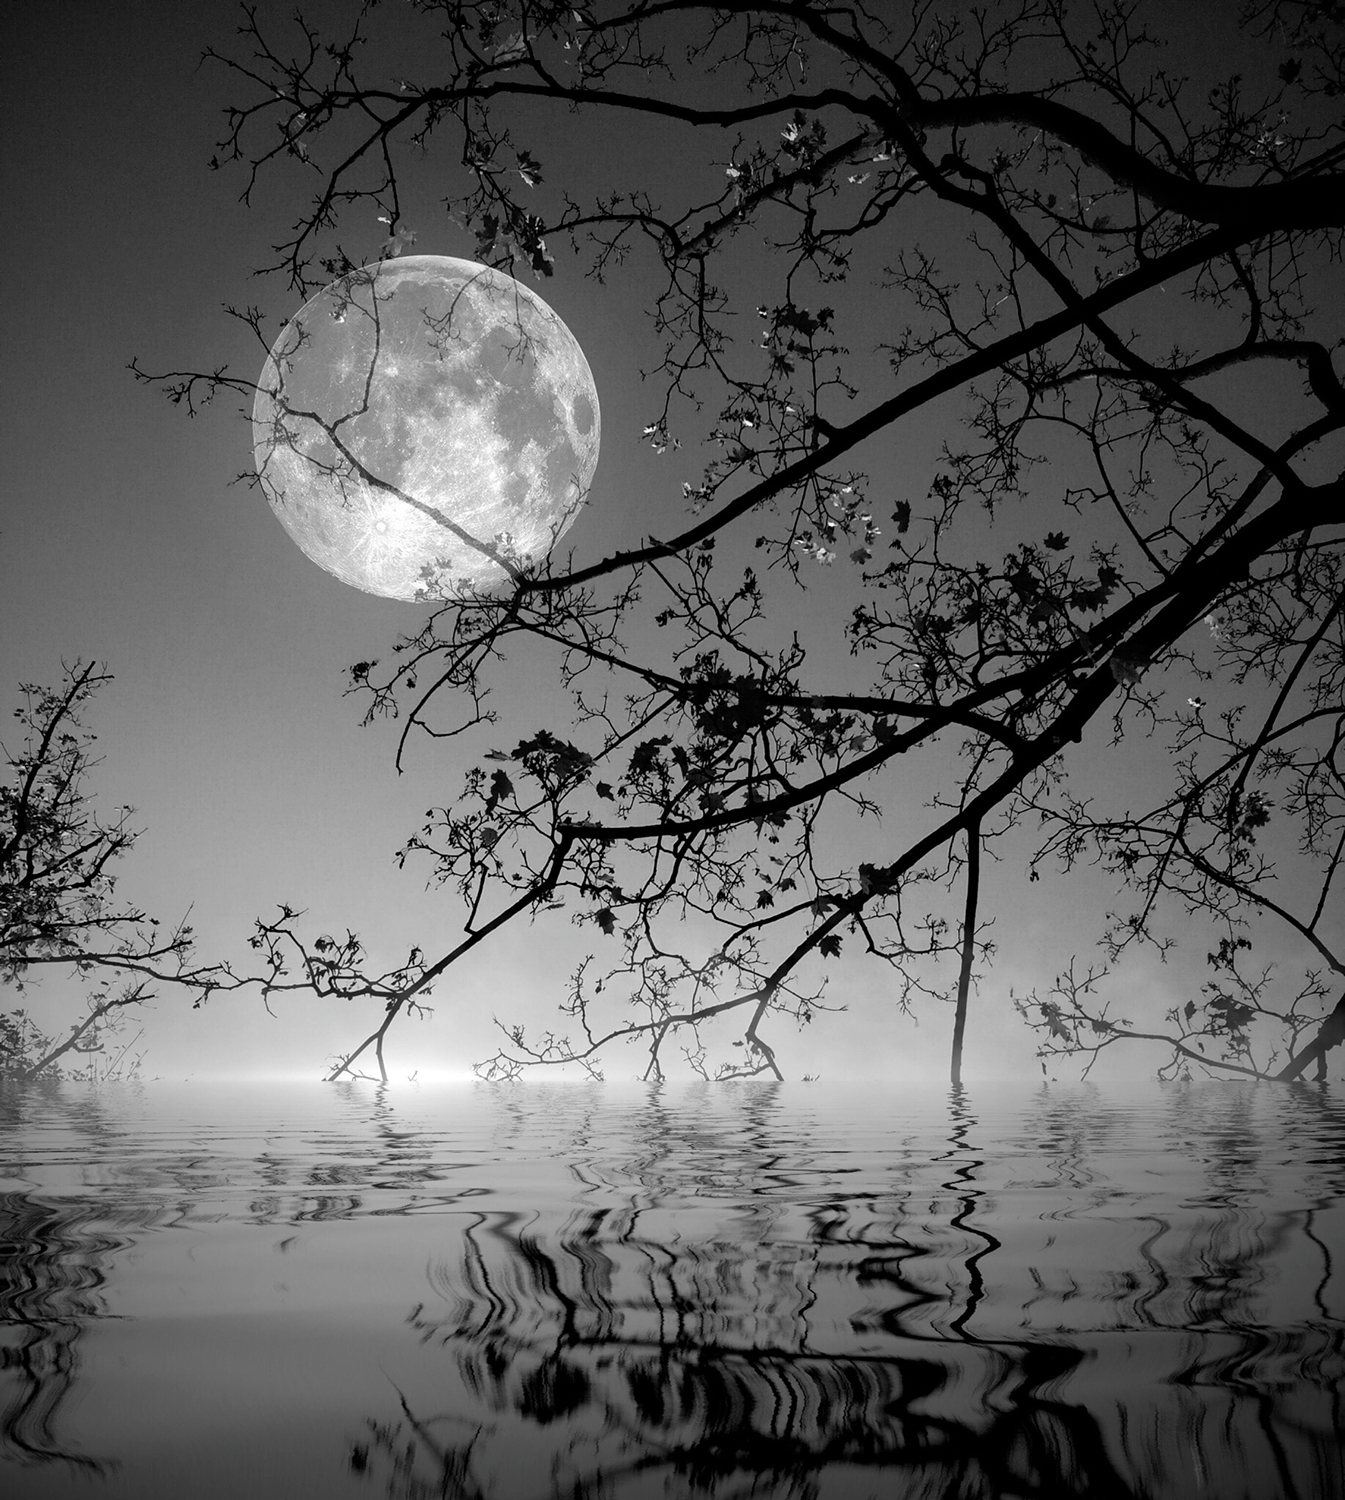 moon-spooky-river-trees